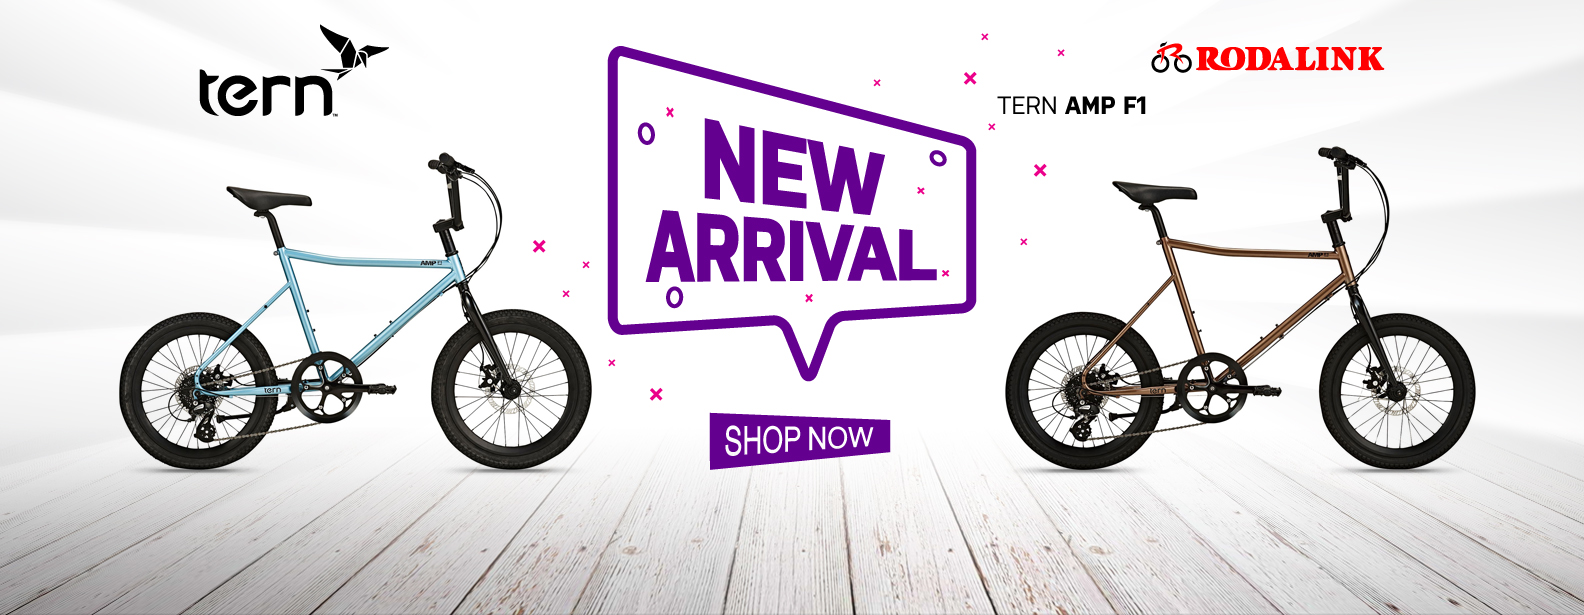 Tern New Arrival AMP F1